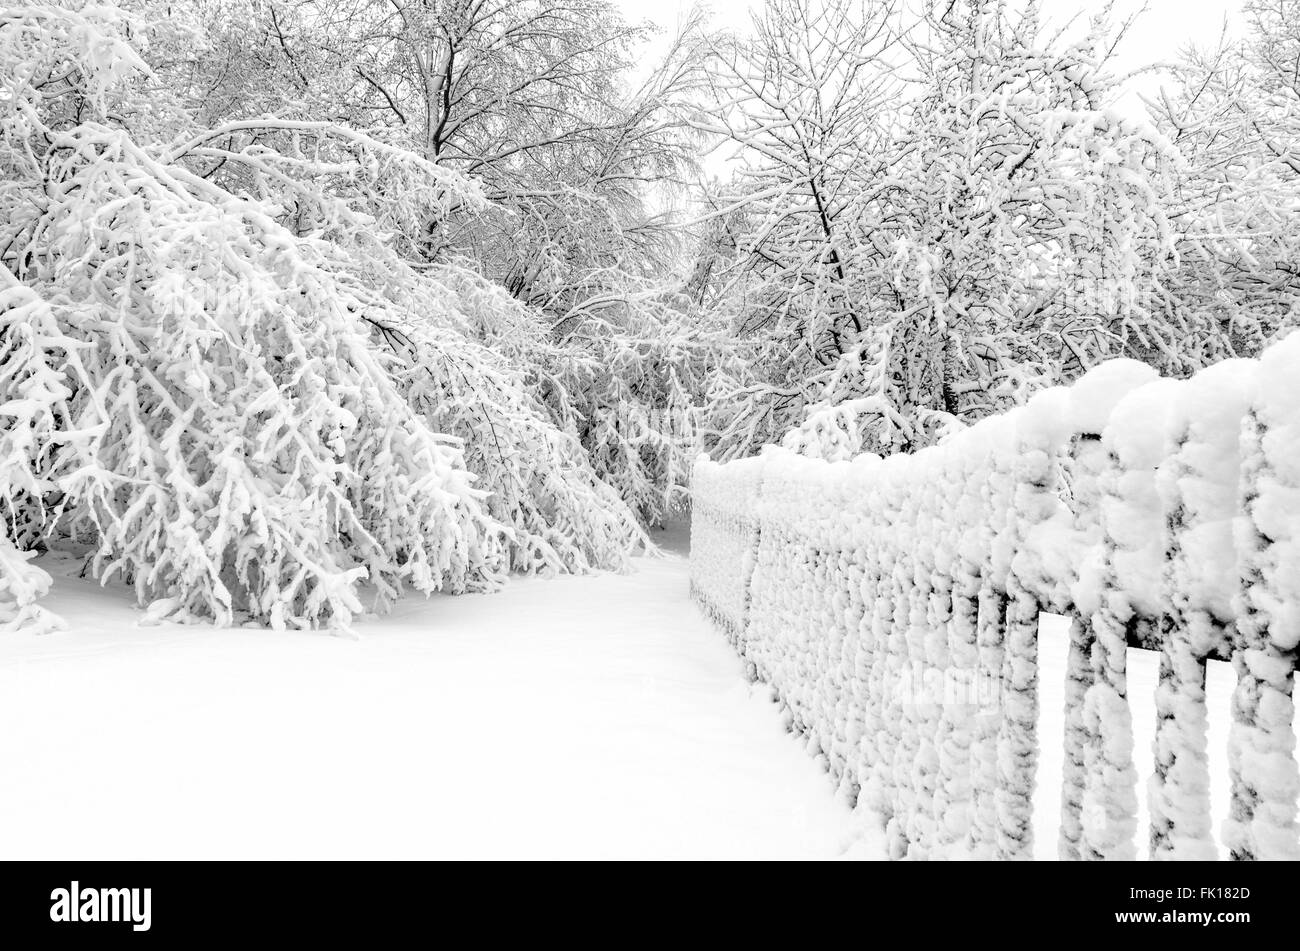 Winter with snow on trees after storm Stock Photo